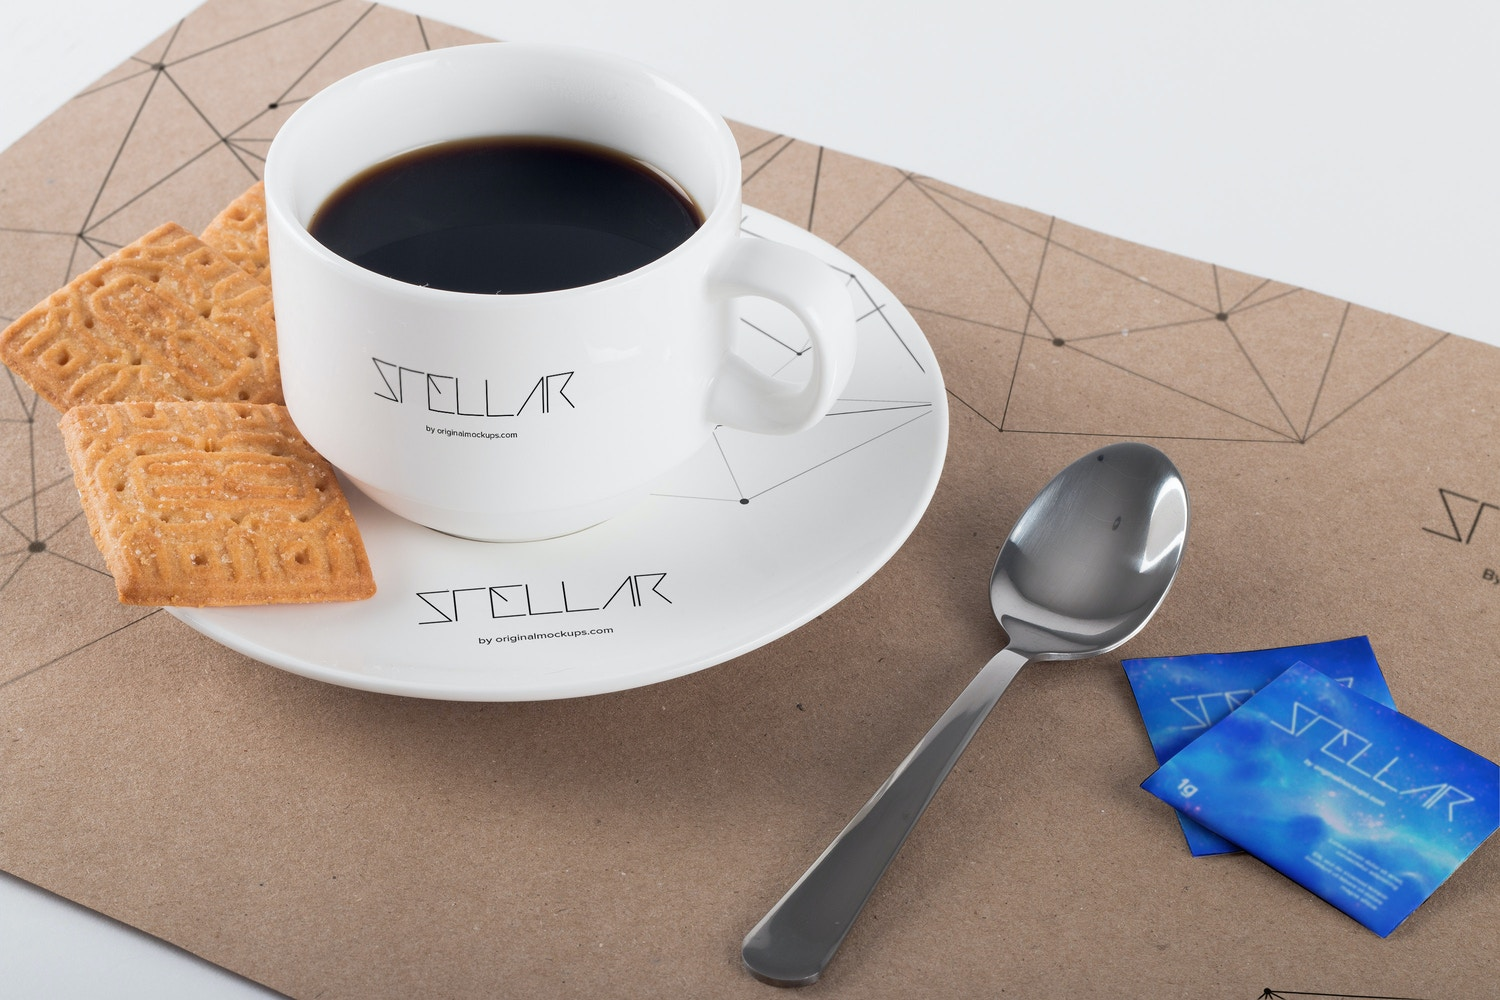 Coffee Cup and Placemat Mockup 01 por Original Mockups en Original Mockups